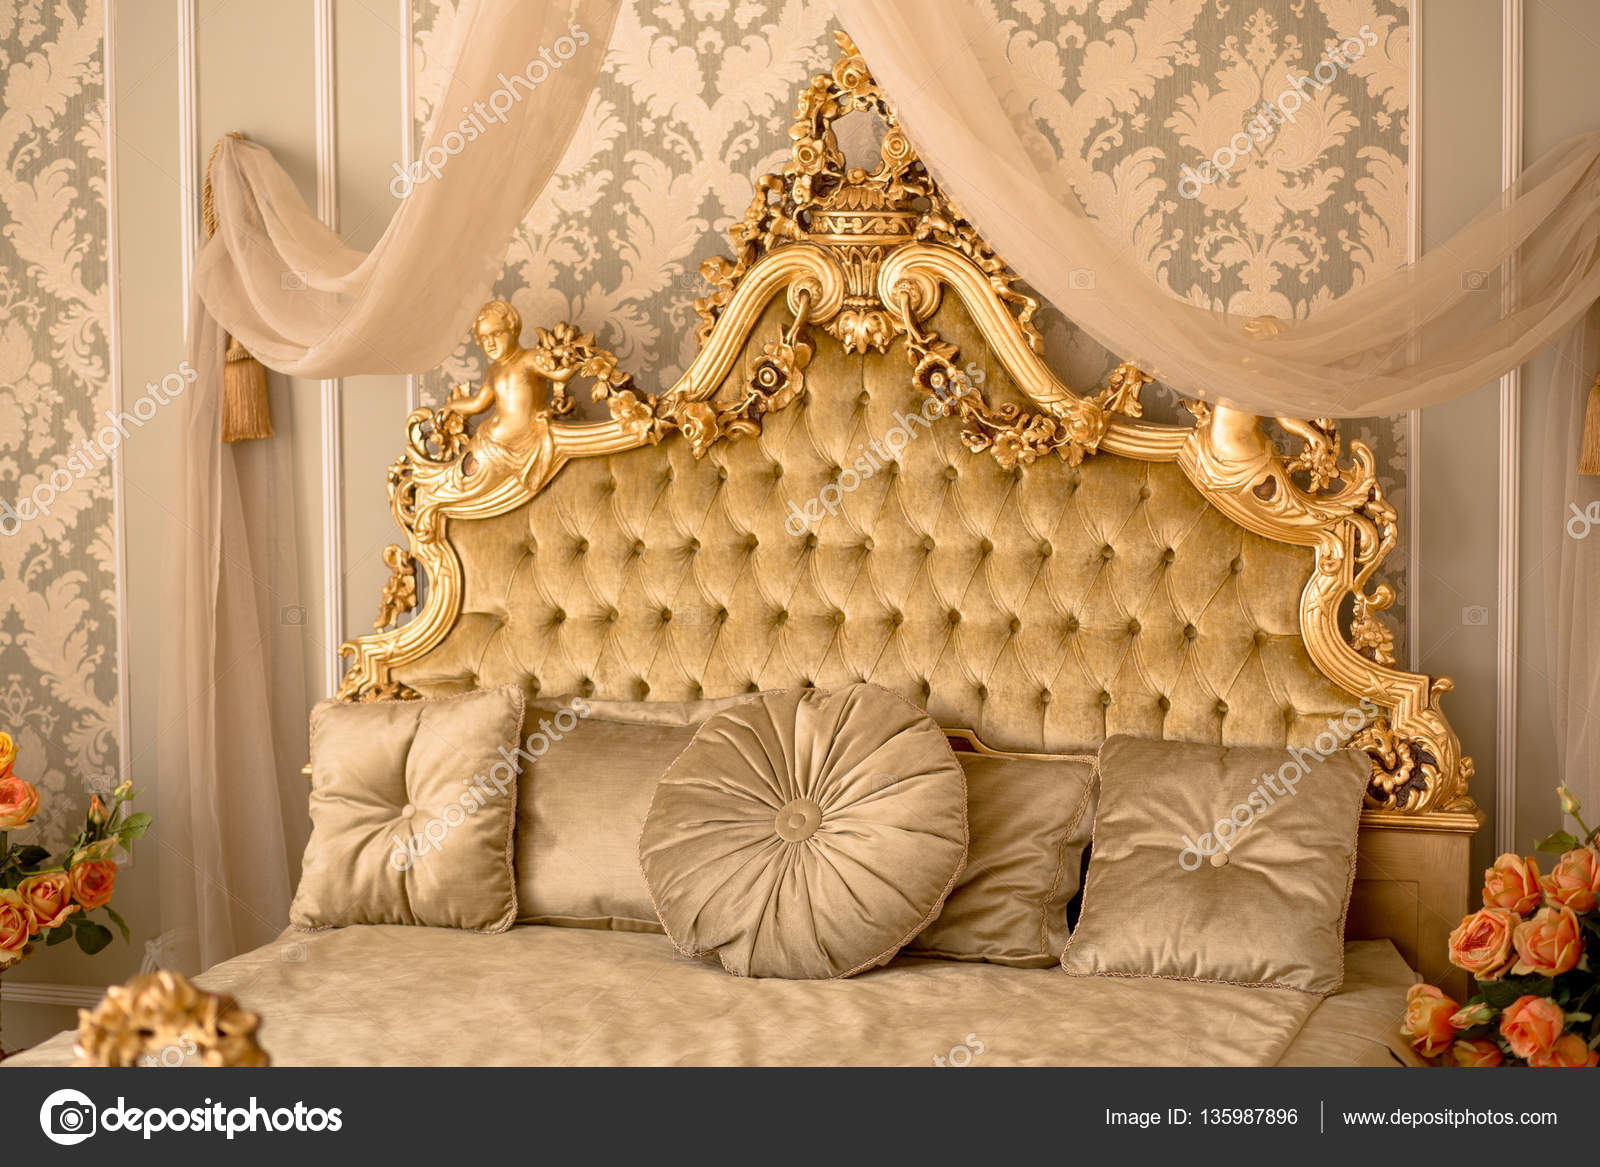 Stunning images de chambre a coucher royal photos design for Chambre a coucher design